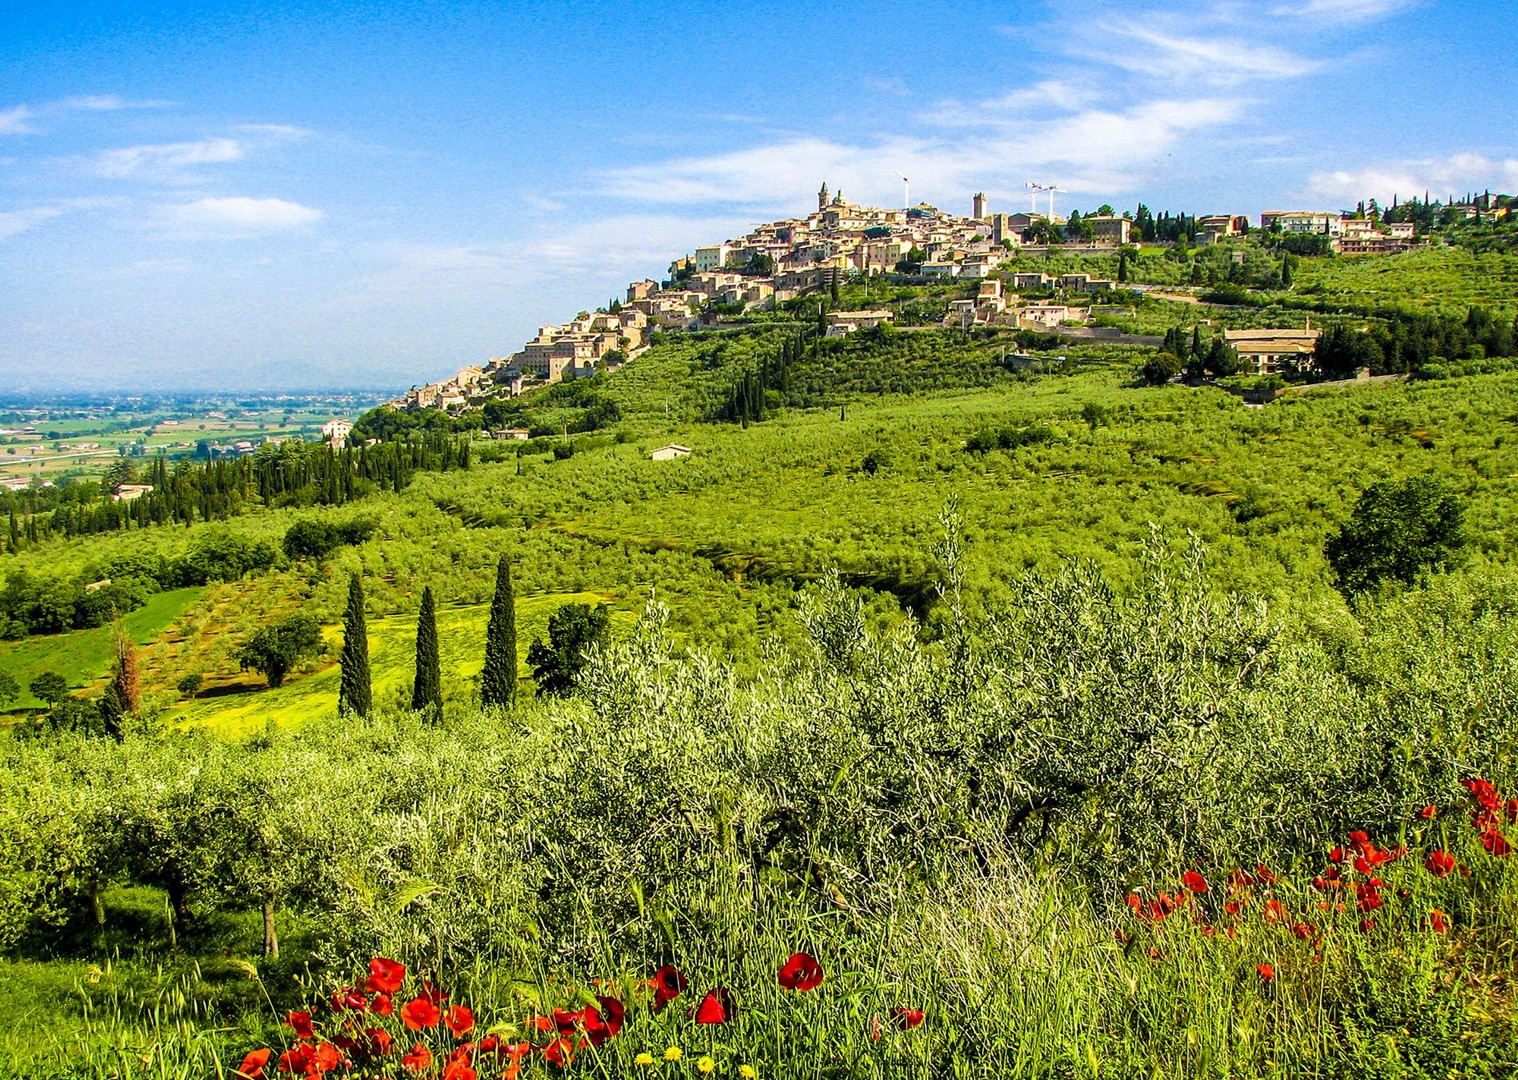 zicht op Trevi.jpg - Italy - Green Valley of Umbria - Self-Guided Leisure Cycling Holiday - Leisure Cycling